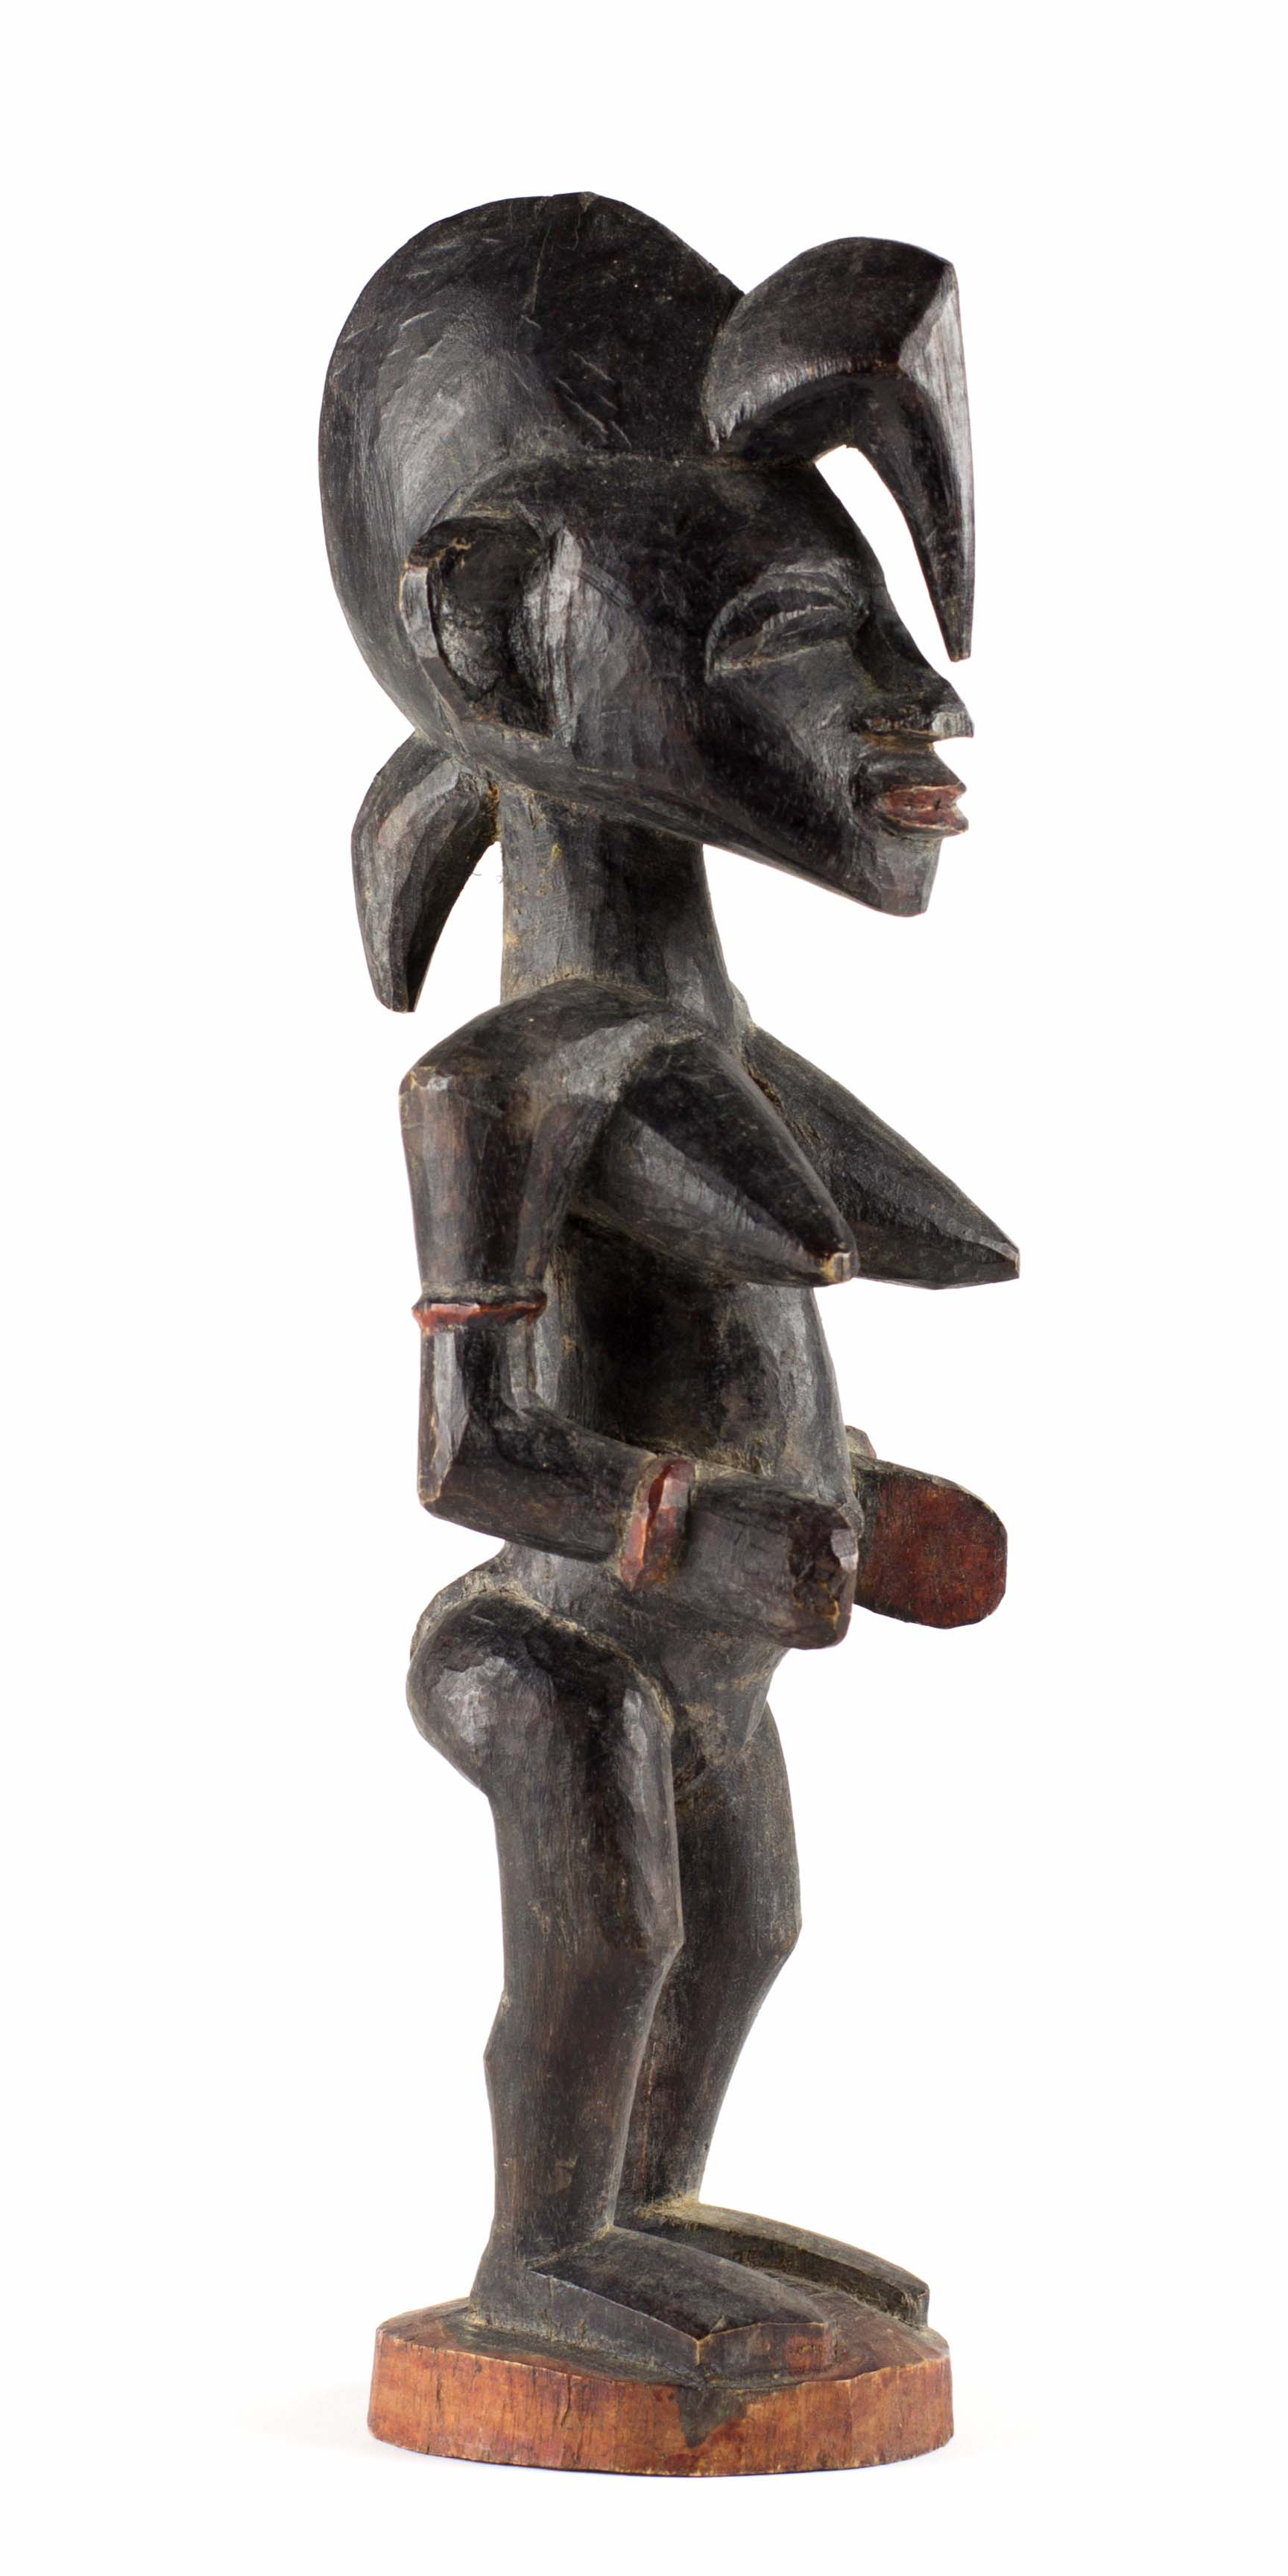 - Female figureKarna OuattaraNafoun (Region of Boundiali, Côte d'Ivoire)Carved for Karl-Heinz Krieg in 1975Wood, H. 26 cm